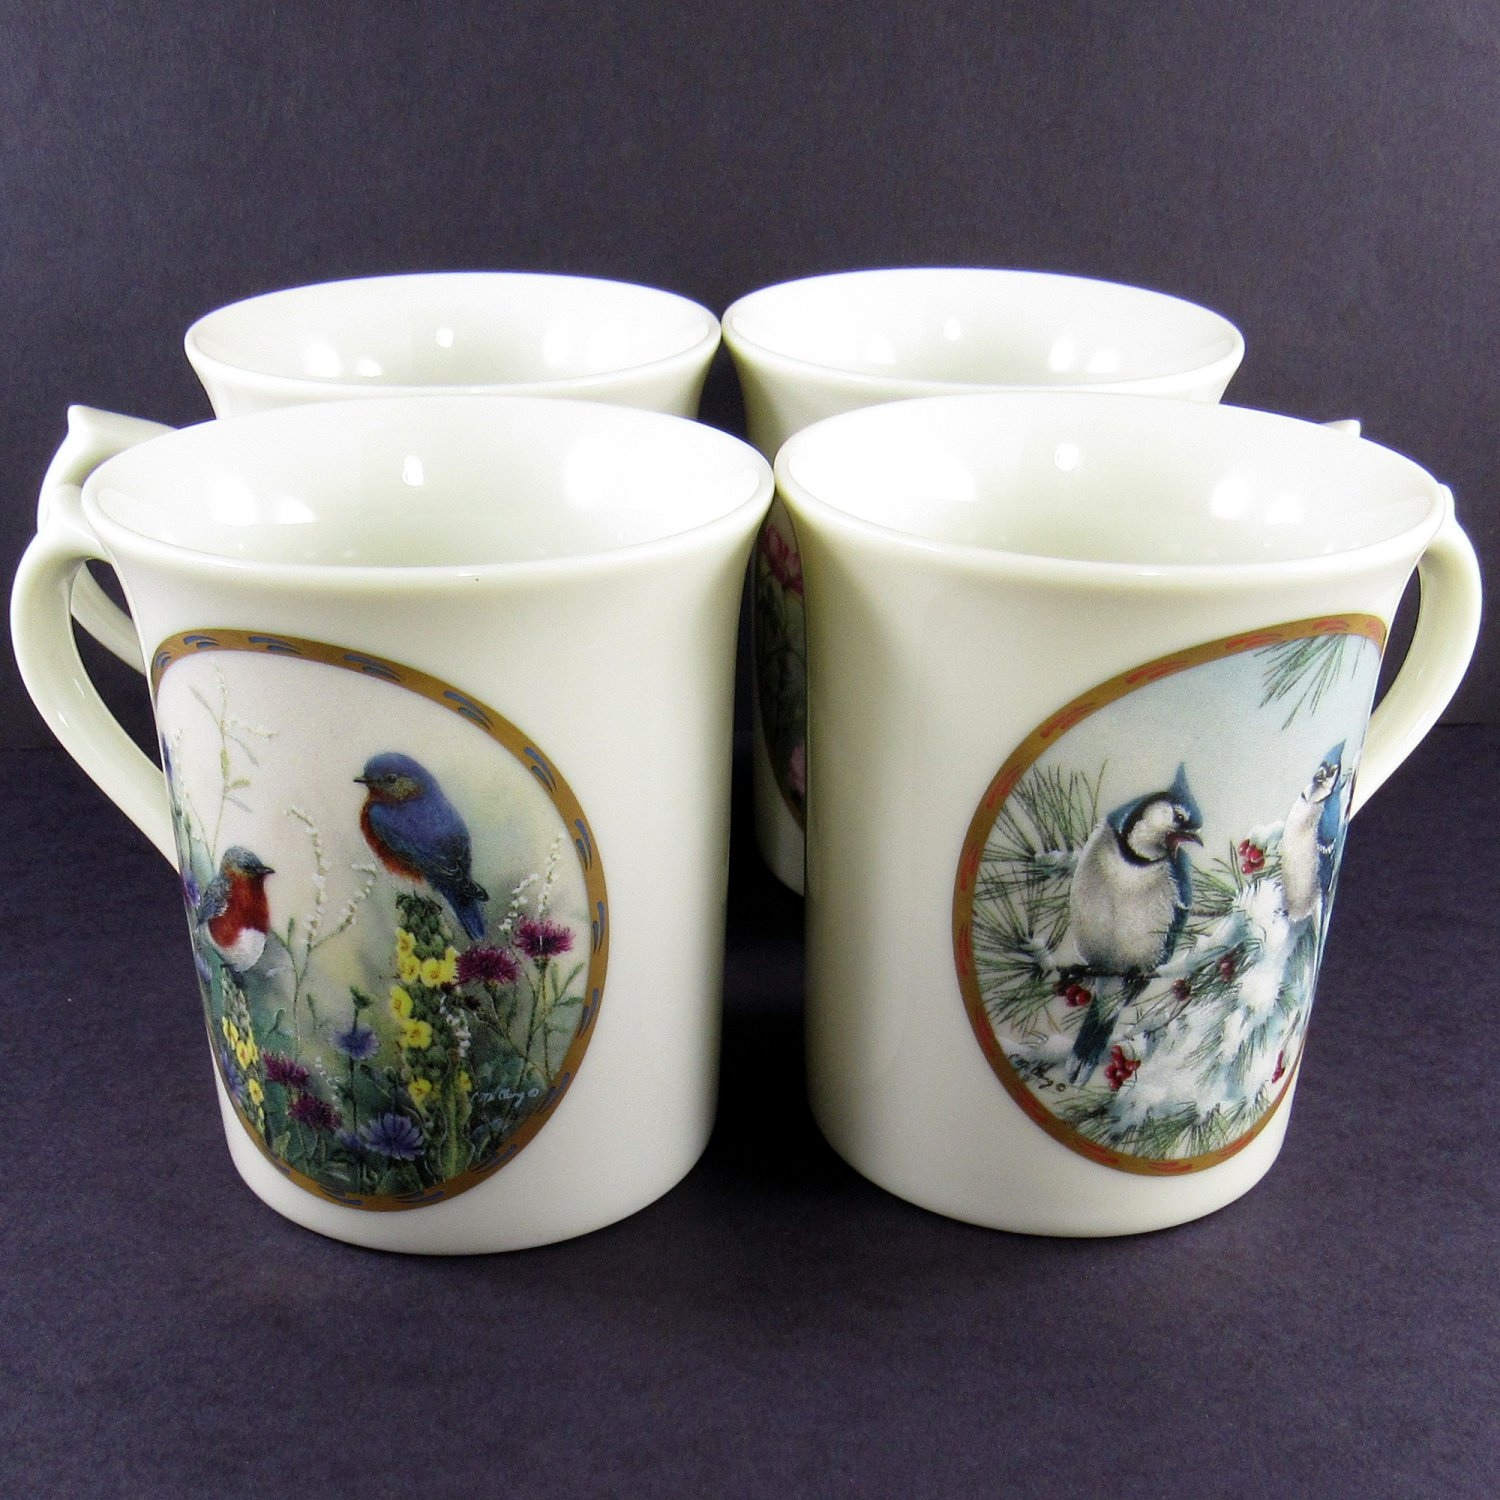 SOLD Lenox Coffee Mugs Set of Four Birds Ltd Edition 1994 Catherine McClung Nature's Collage Coll